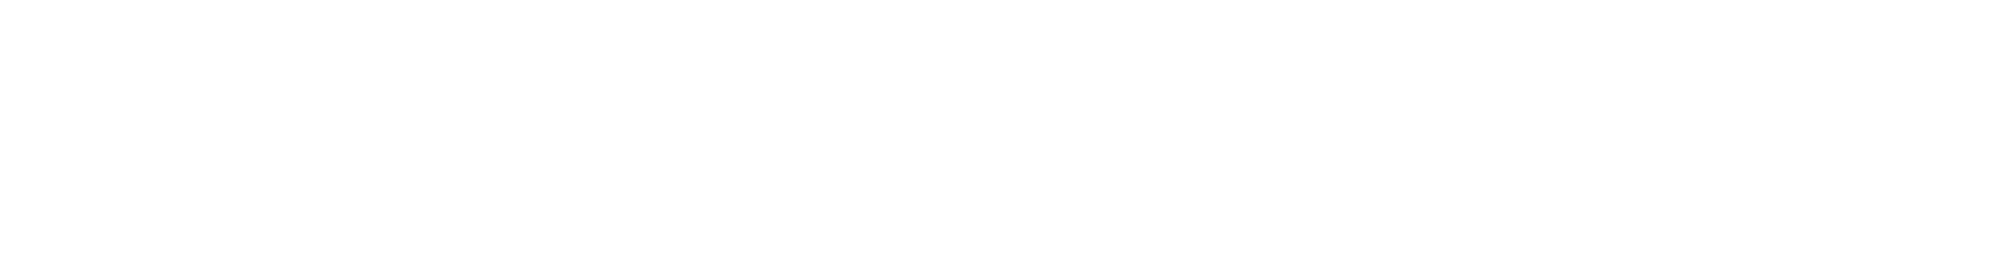 The-Monarch-Group